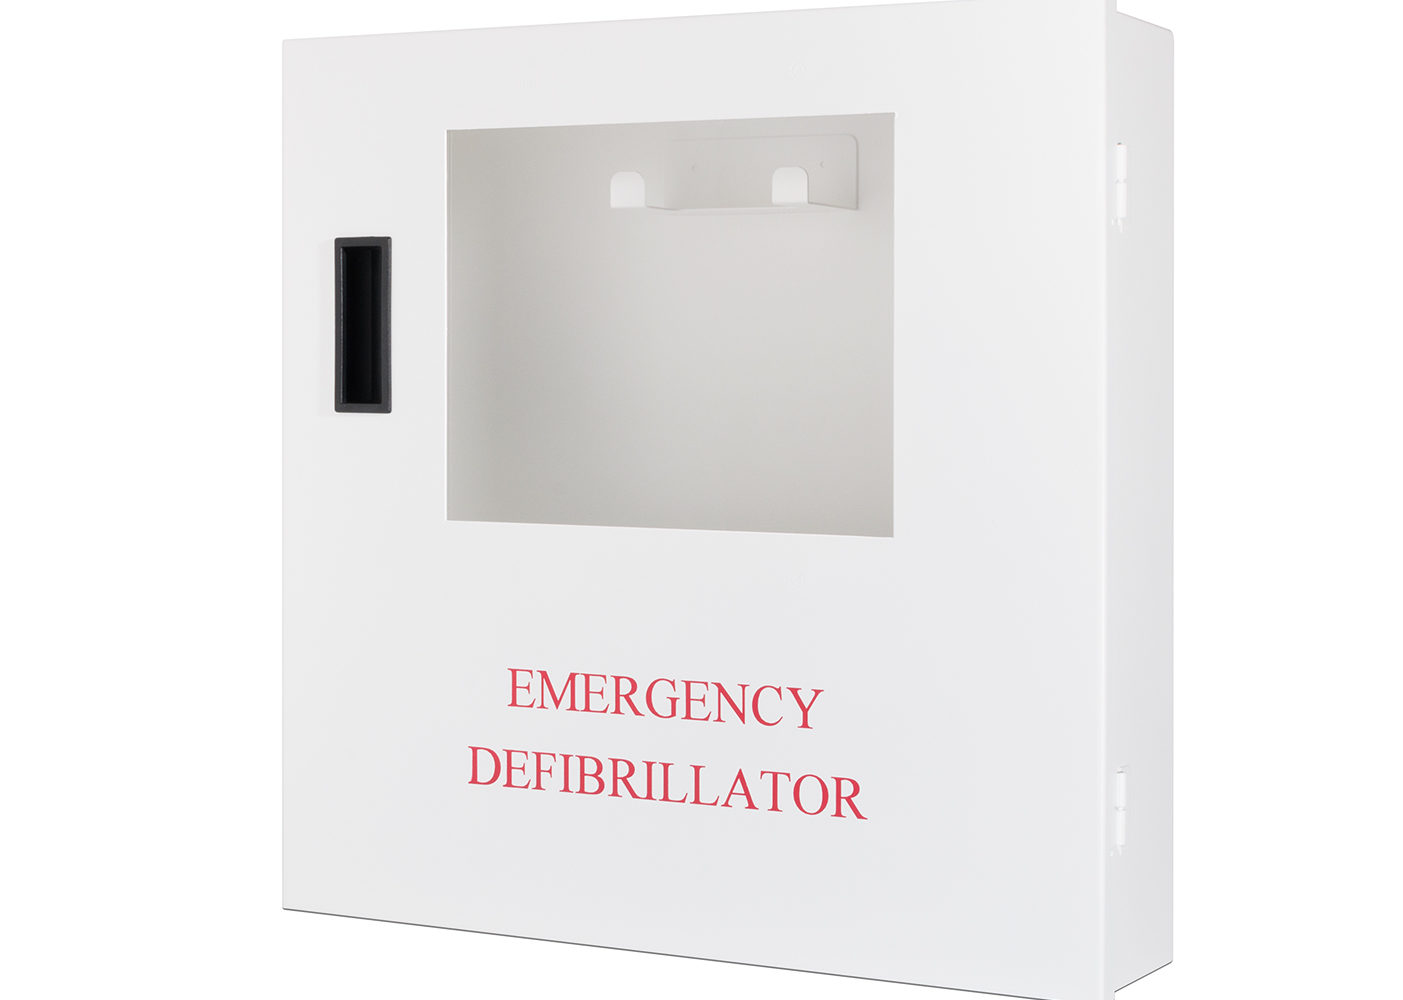 Wall Mounted Cabinet - Non-Alarmed Image